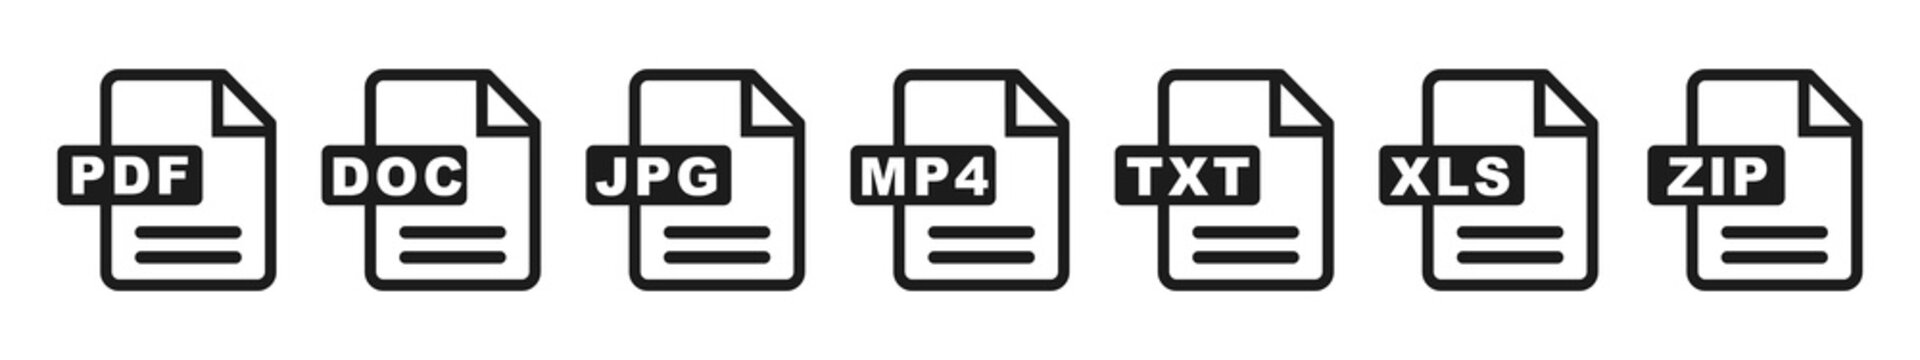 Symbol set file formats, file extensions diverse icons set isolated - for stock